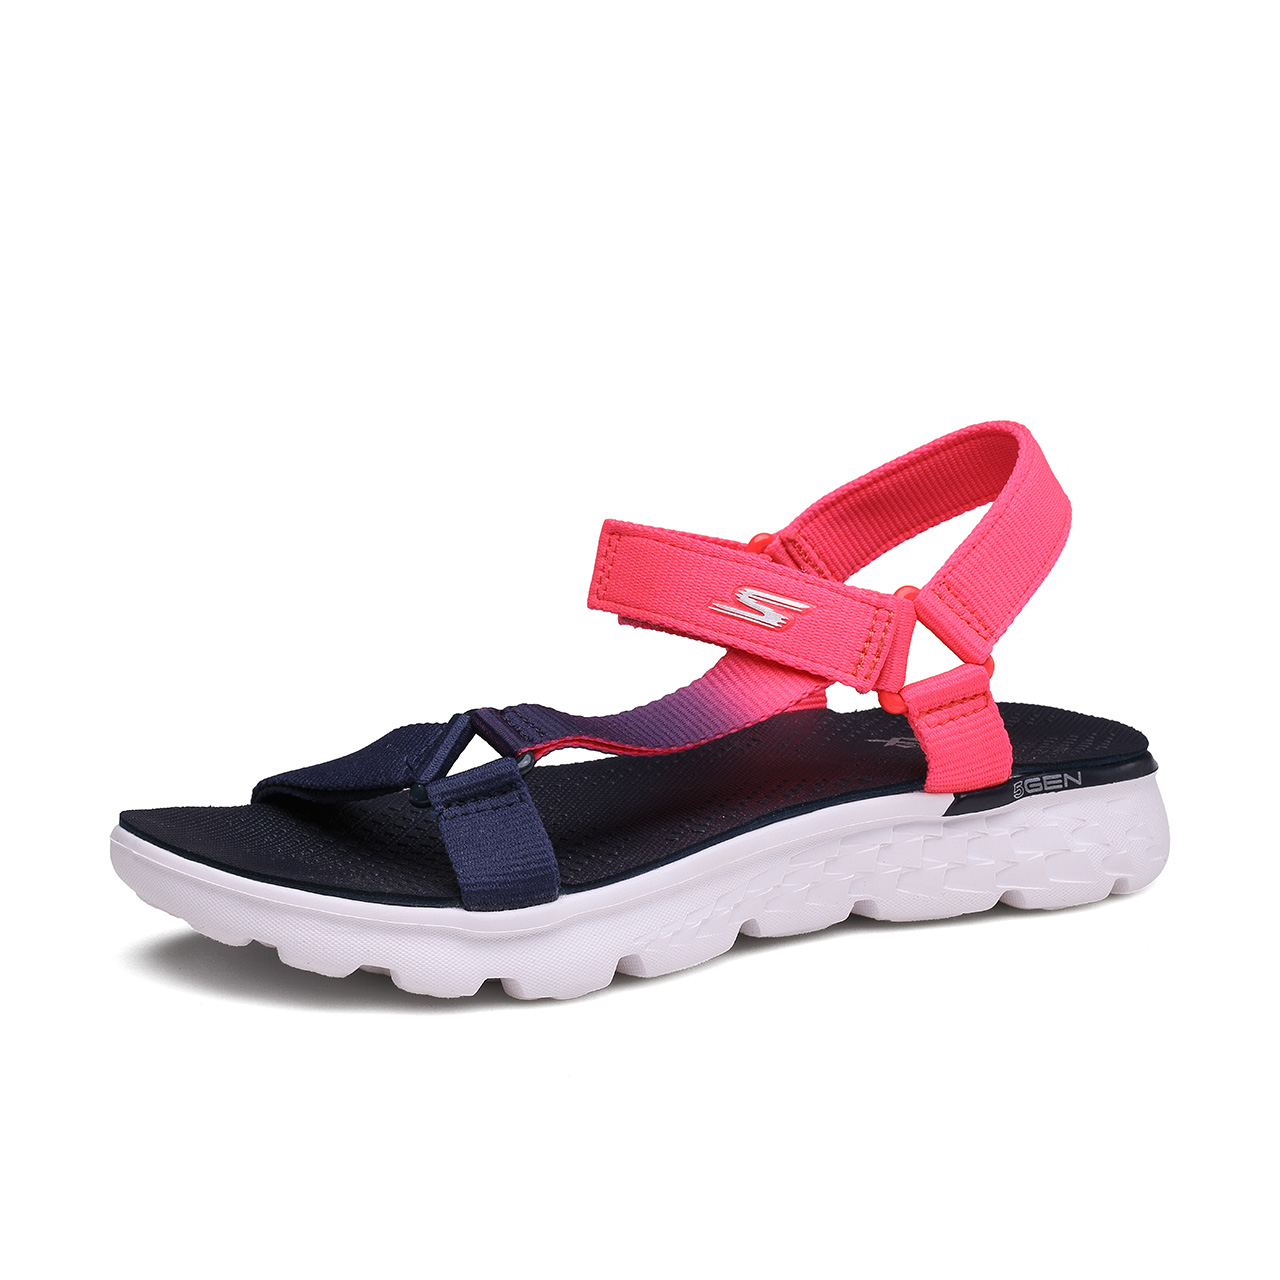 4300952b149f1 ... lightbox moreview · lightbox moreview · lightbox moreview · lightbox  moreview. PrevNext. Skechers Skechers women s shoes simple and comfortable  sandals ...